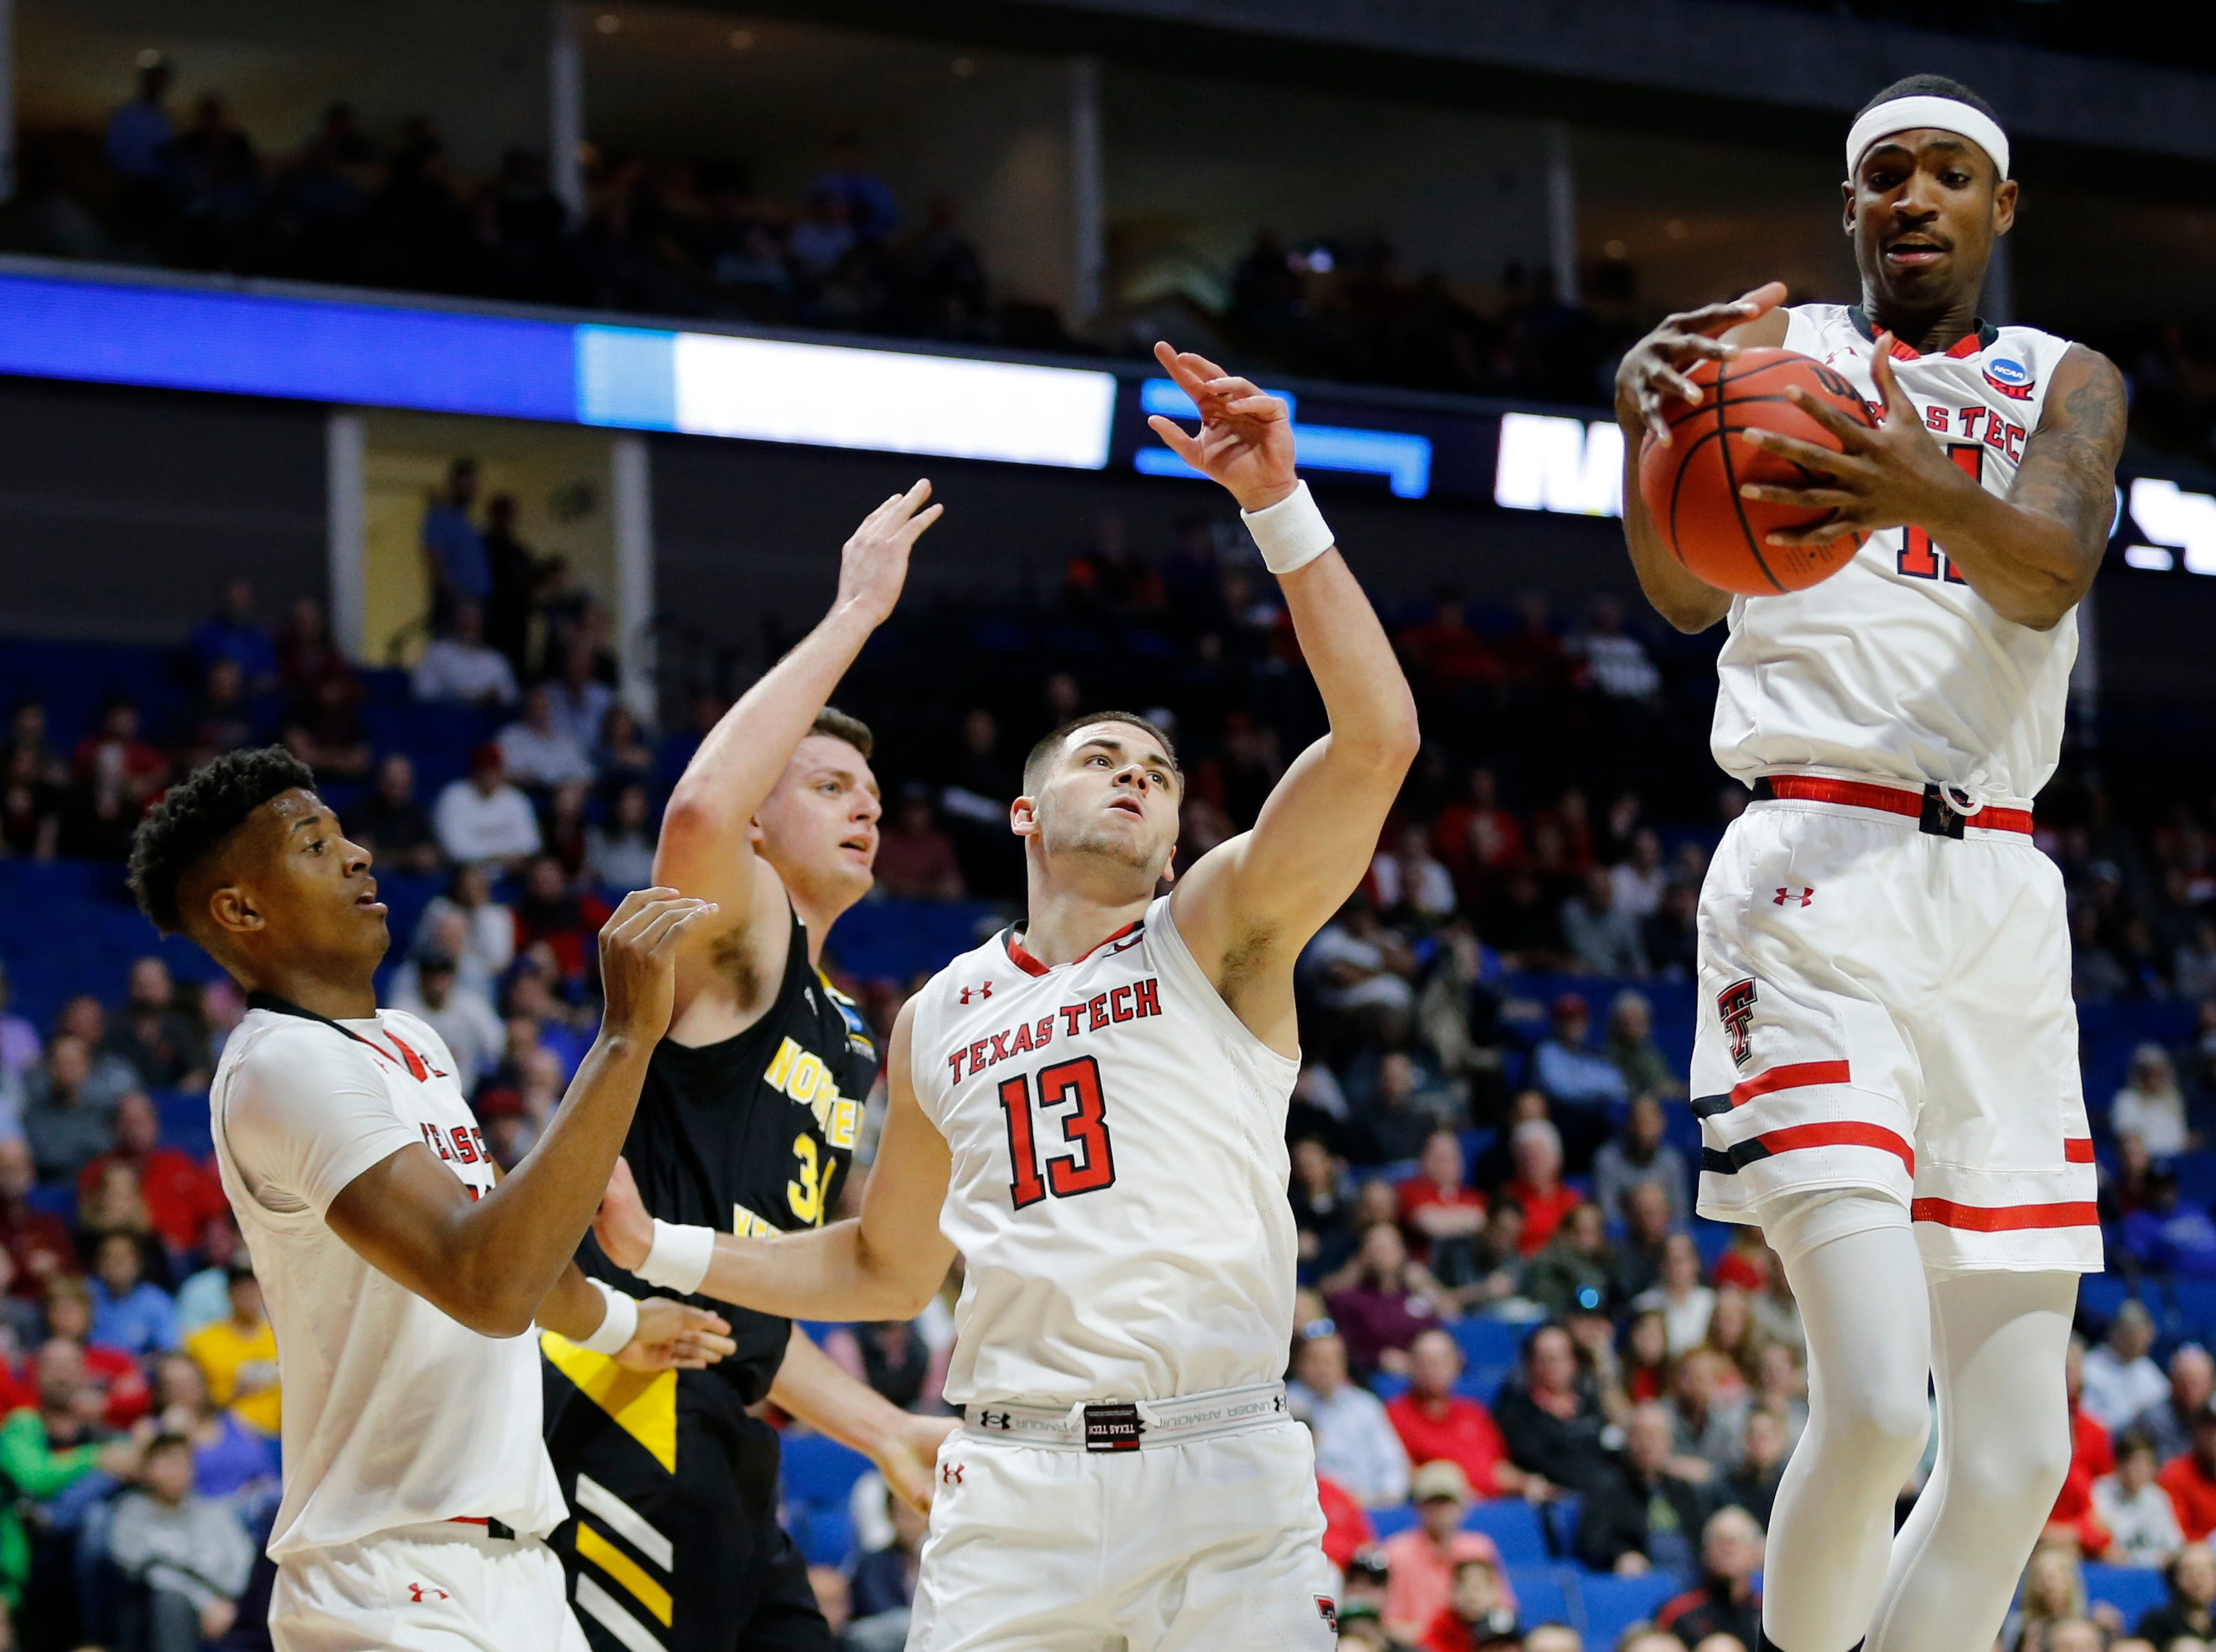 Texas Tech Red Raiders forward Tariq Owens (11) pulls down a rebound over Northern Kentucky Norse forward Drew McDonald (34) in the first half of the NCAA Tournament First Round game between the 14-seeded Northern Kentucky Norse and the 3-seeded Texas Tech Red Raiders the BOK Center in downtown Tulsa on Friday, March 22, 2019. Texas Tech led 30-26 at halftime.